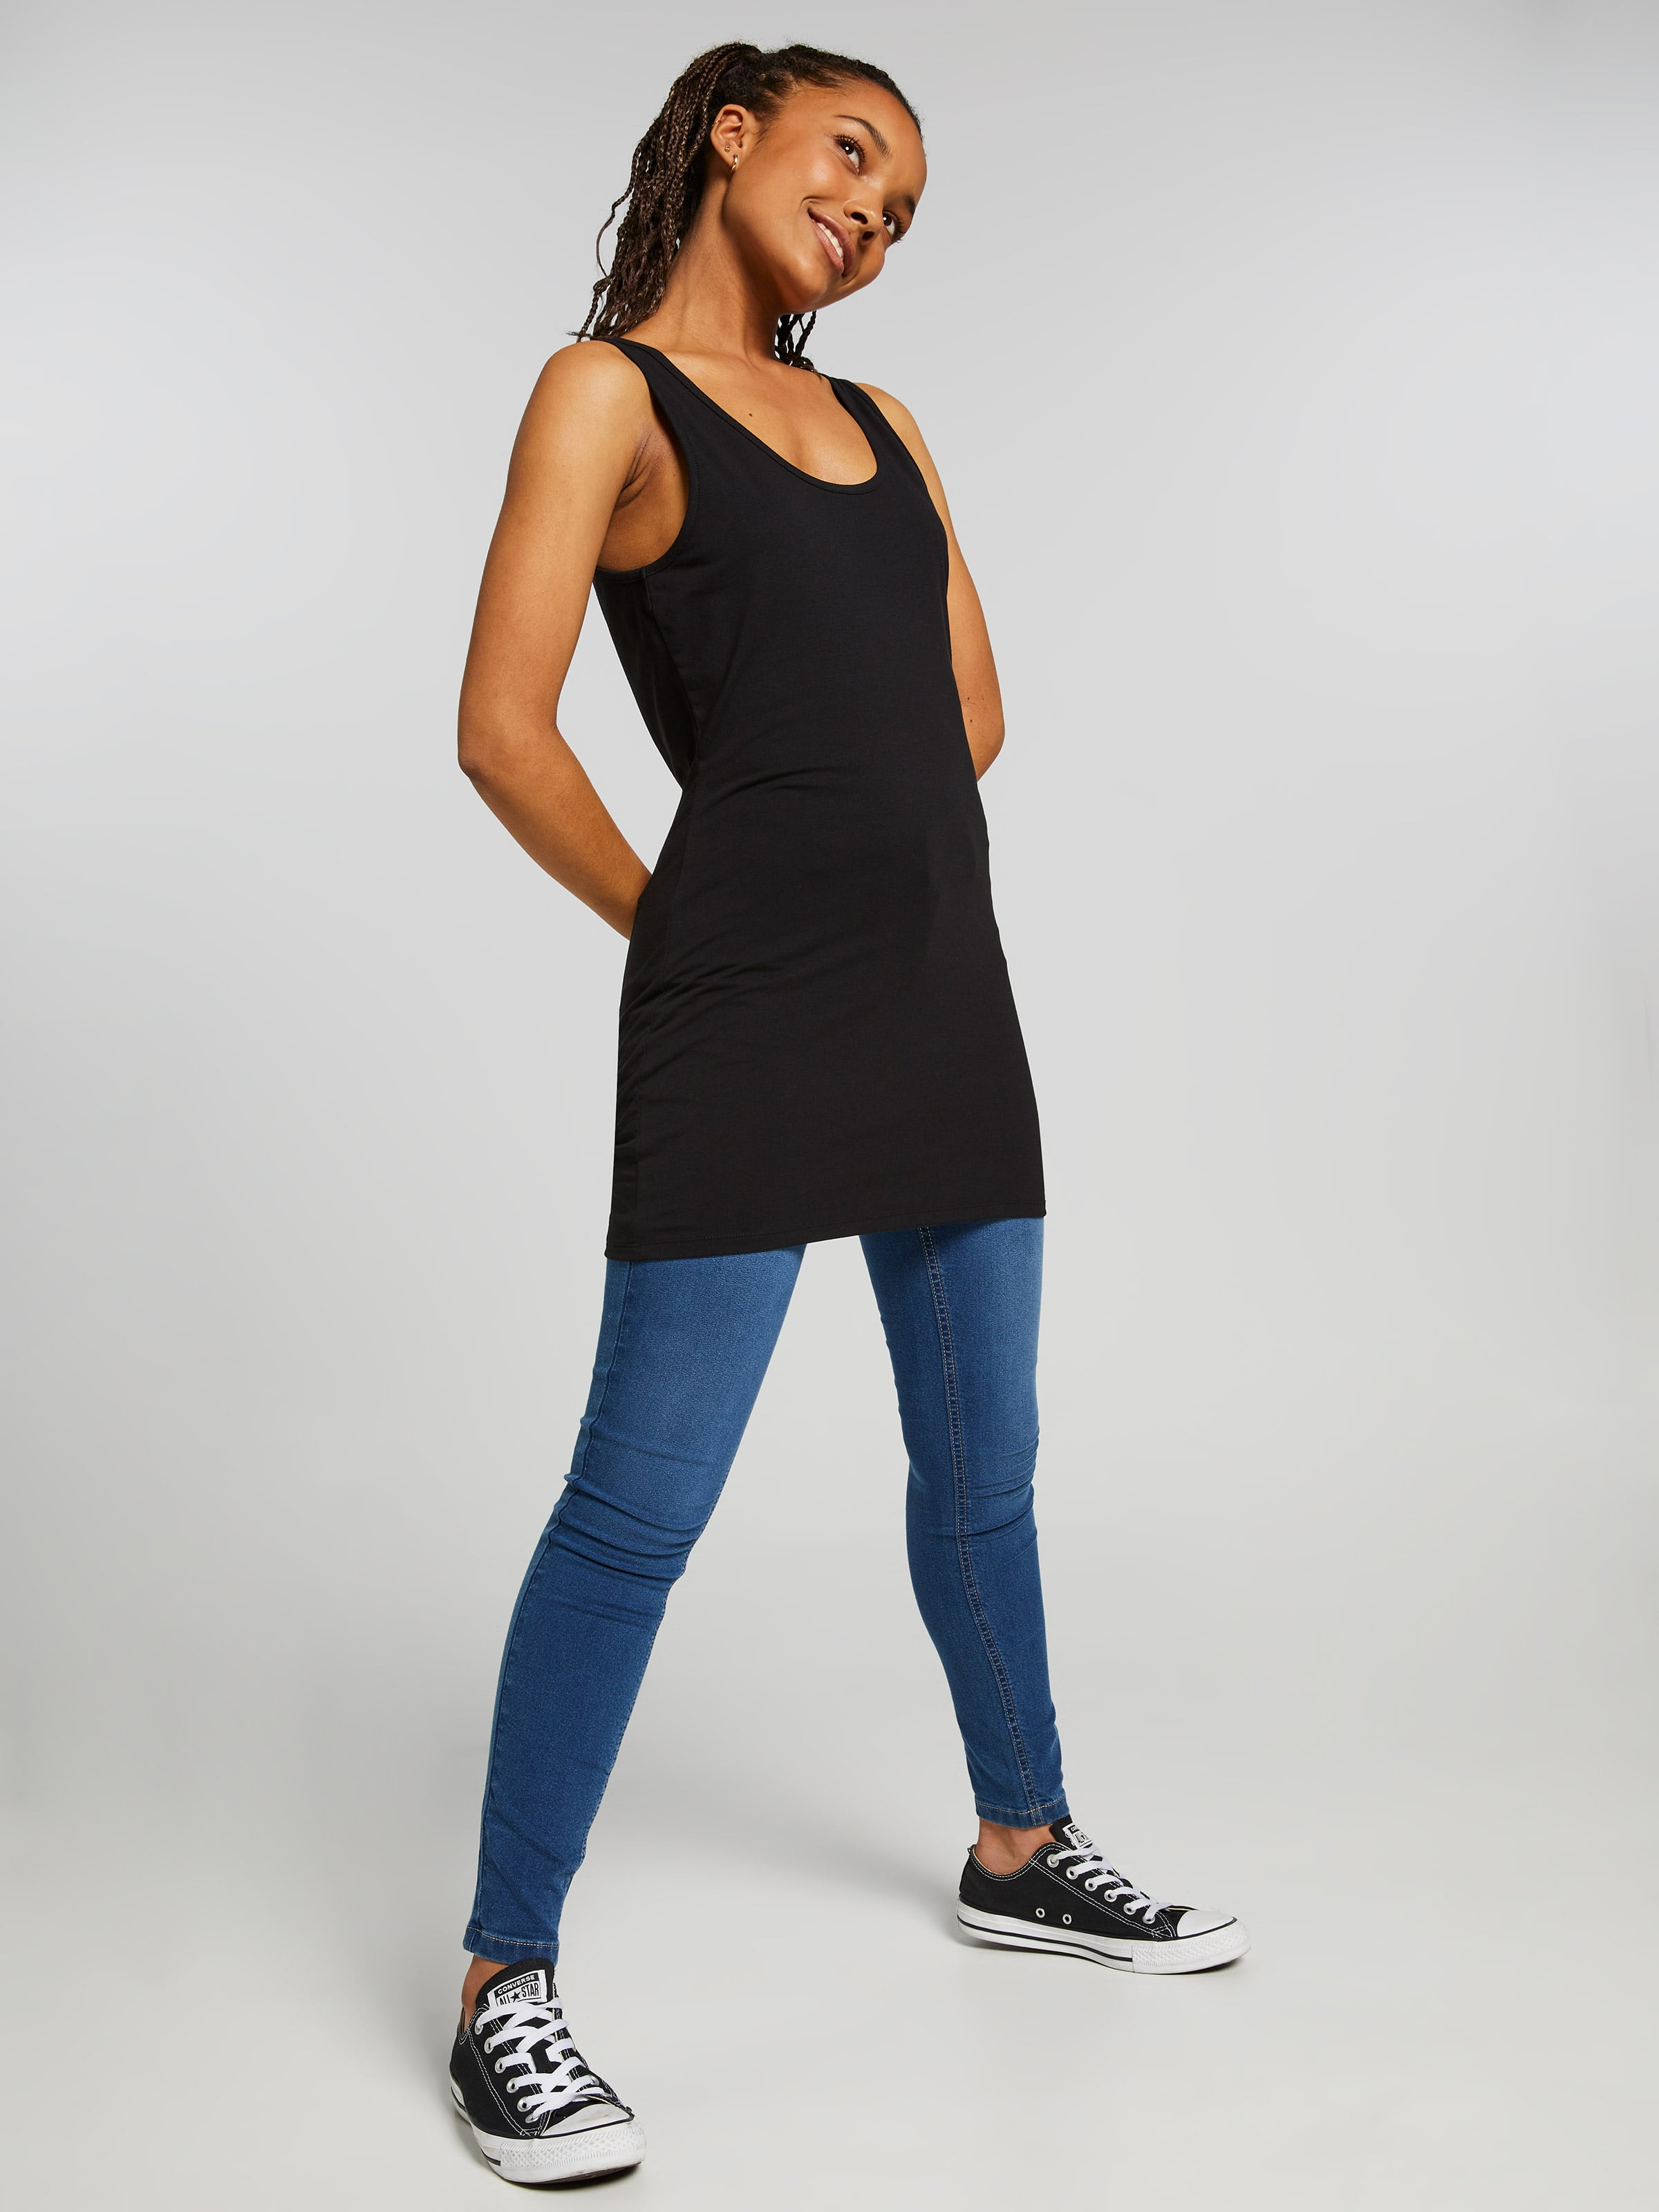 1af7b06cf38b0 Image for Longline Essential Tank from Jay Jays ...